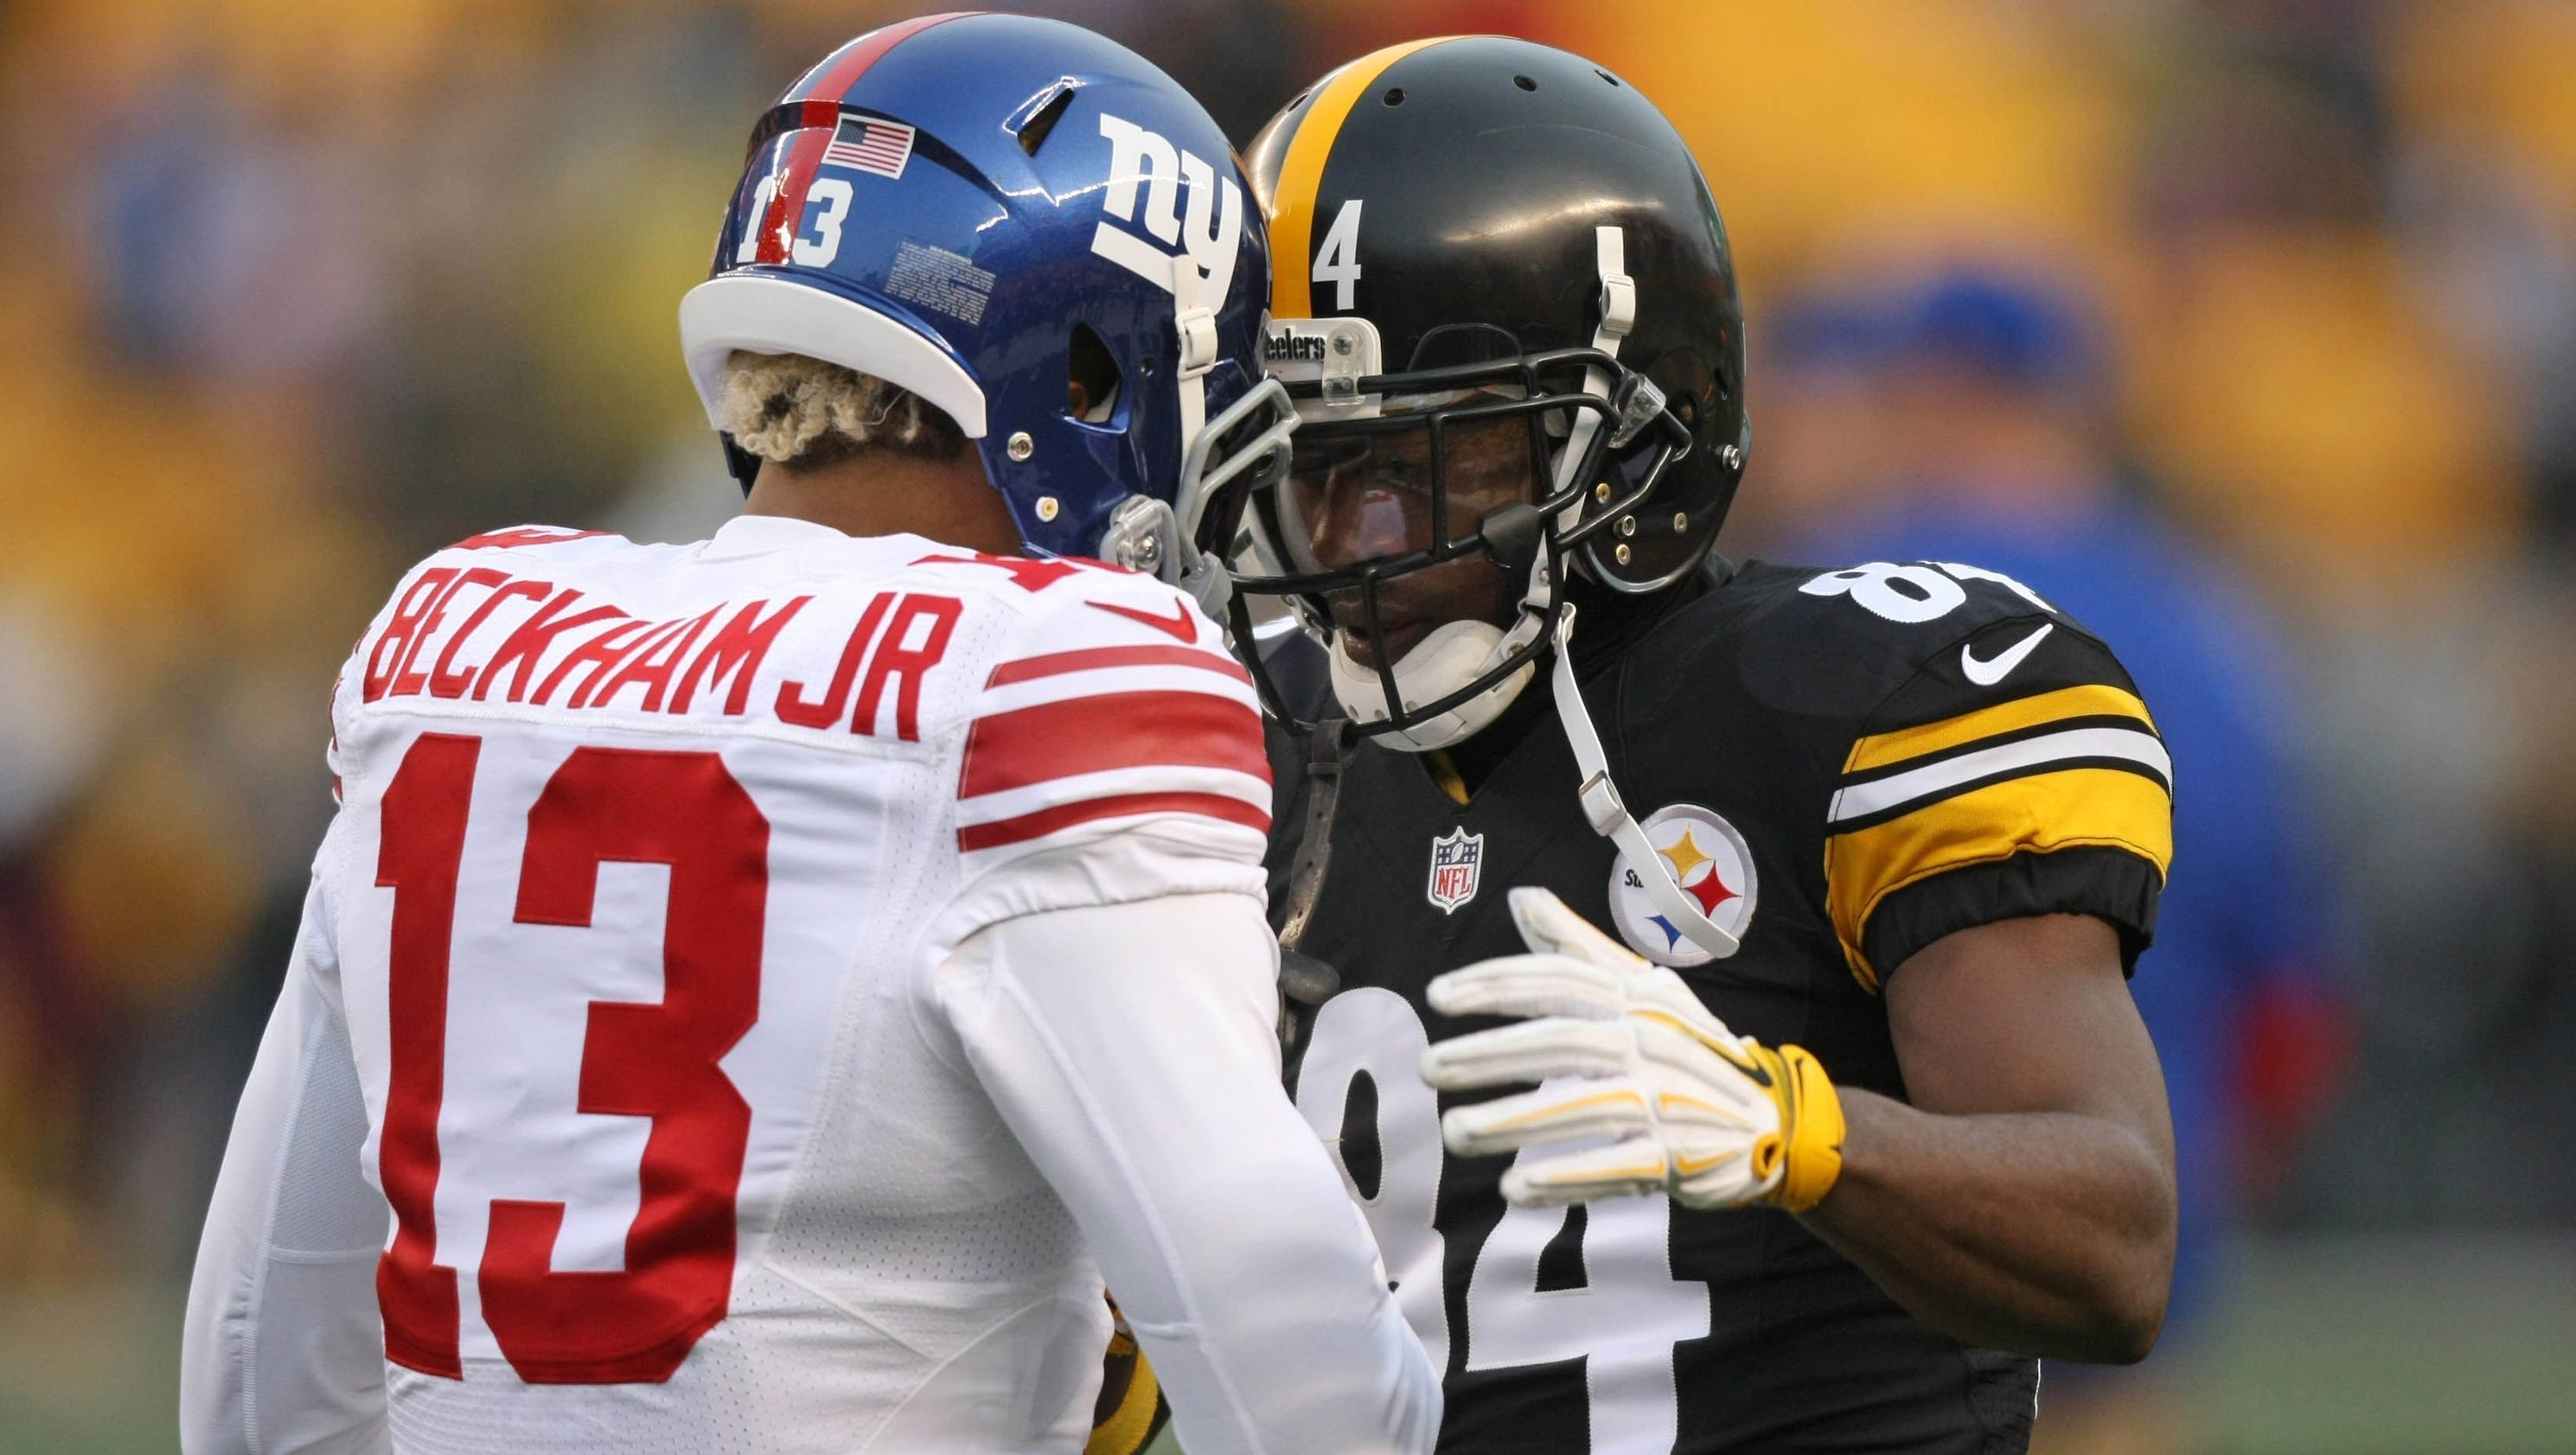 636612984482259454-usp-nfl-new-york-giants-at-pittsburgh-steelers-87176194